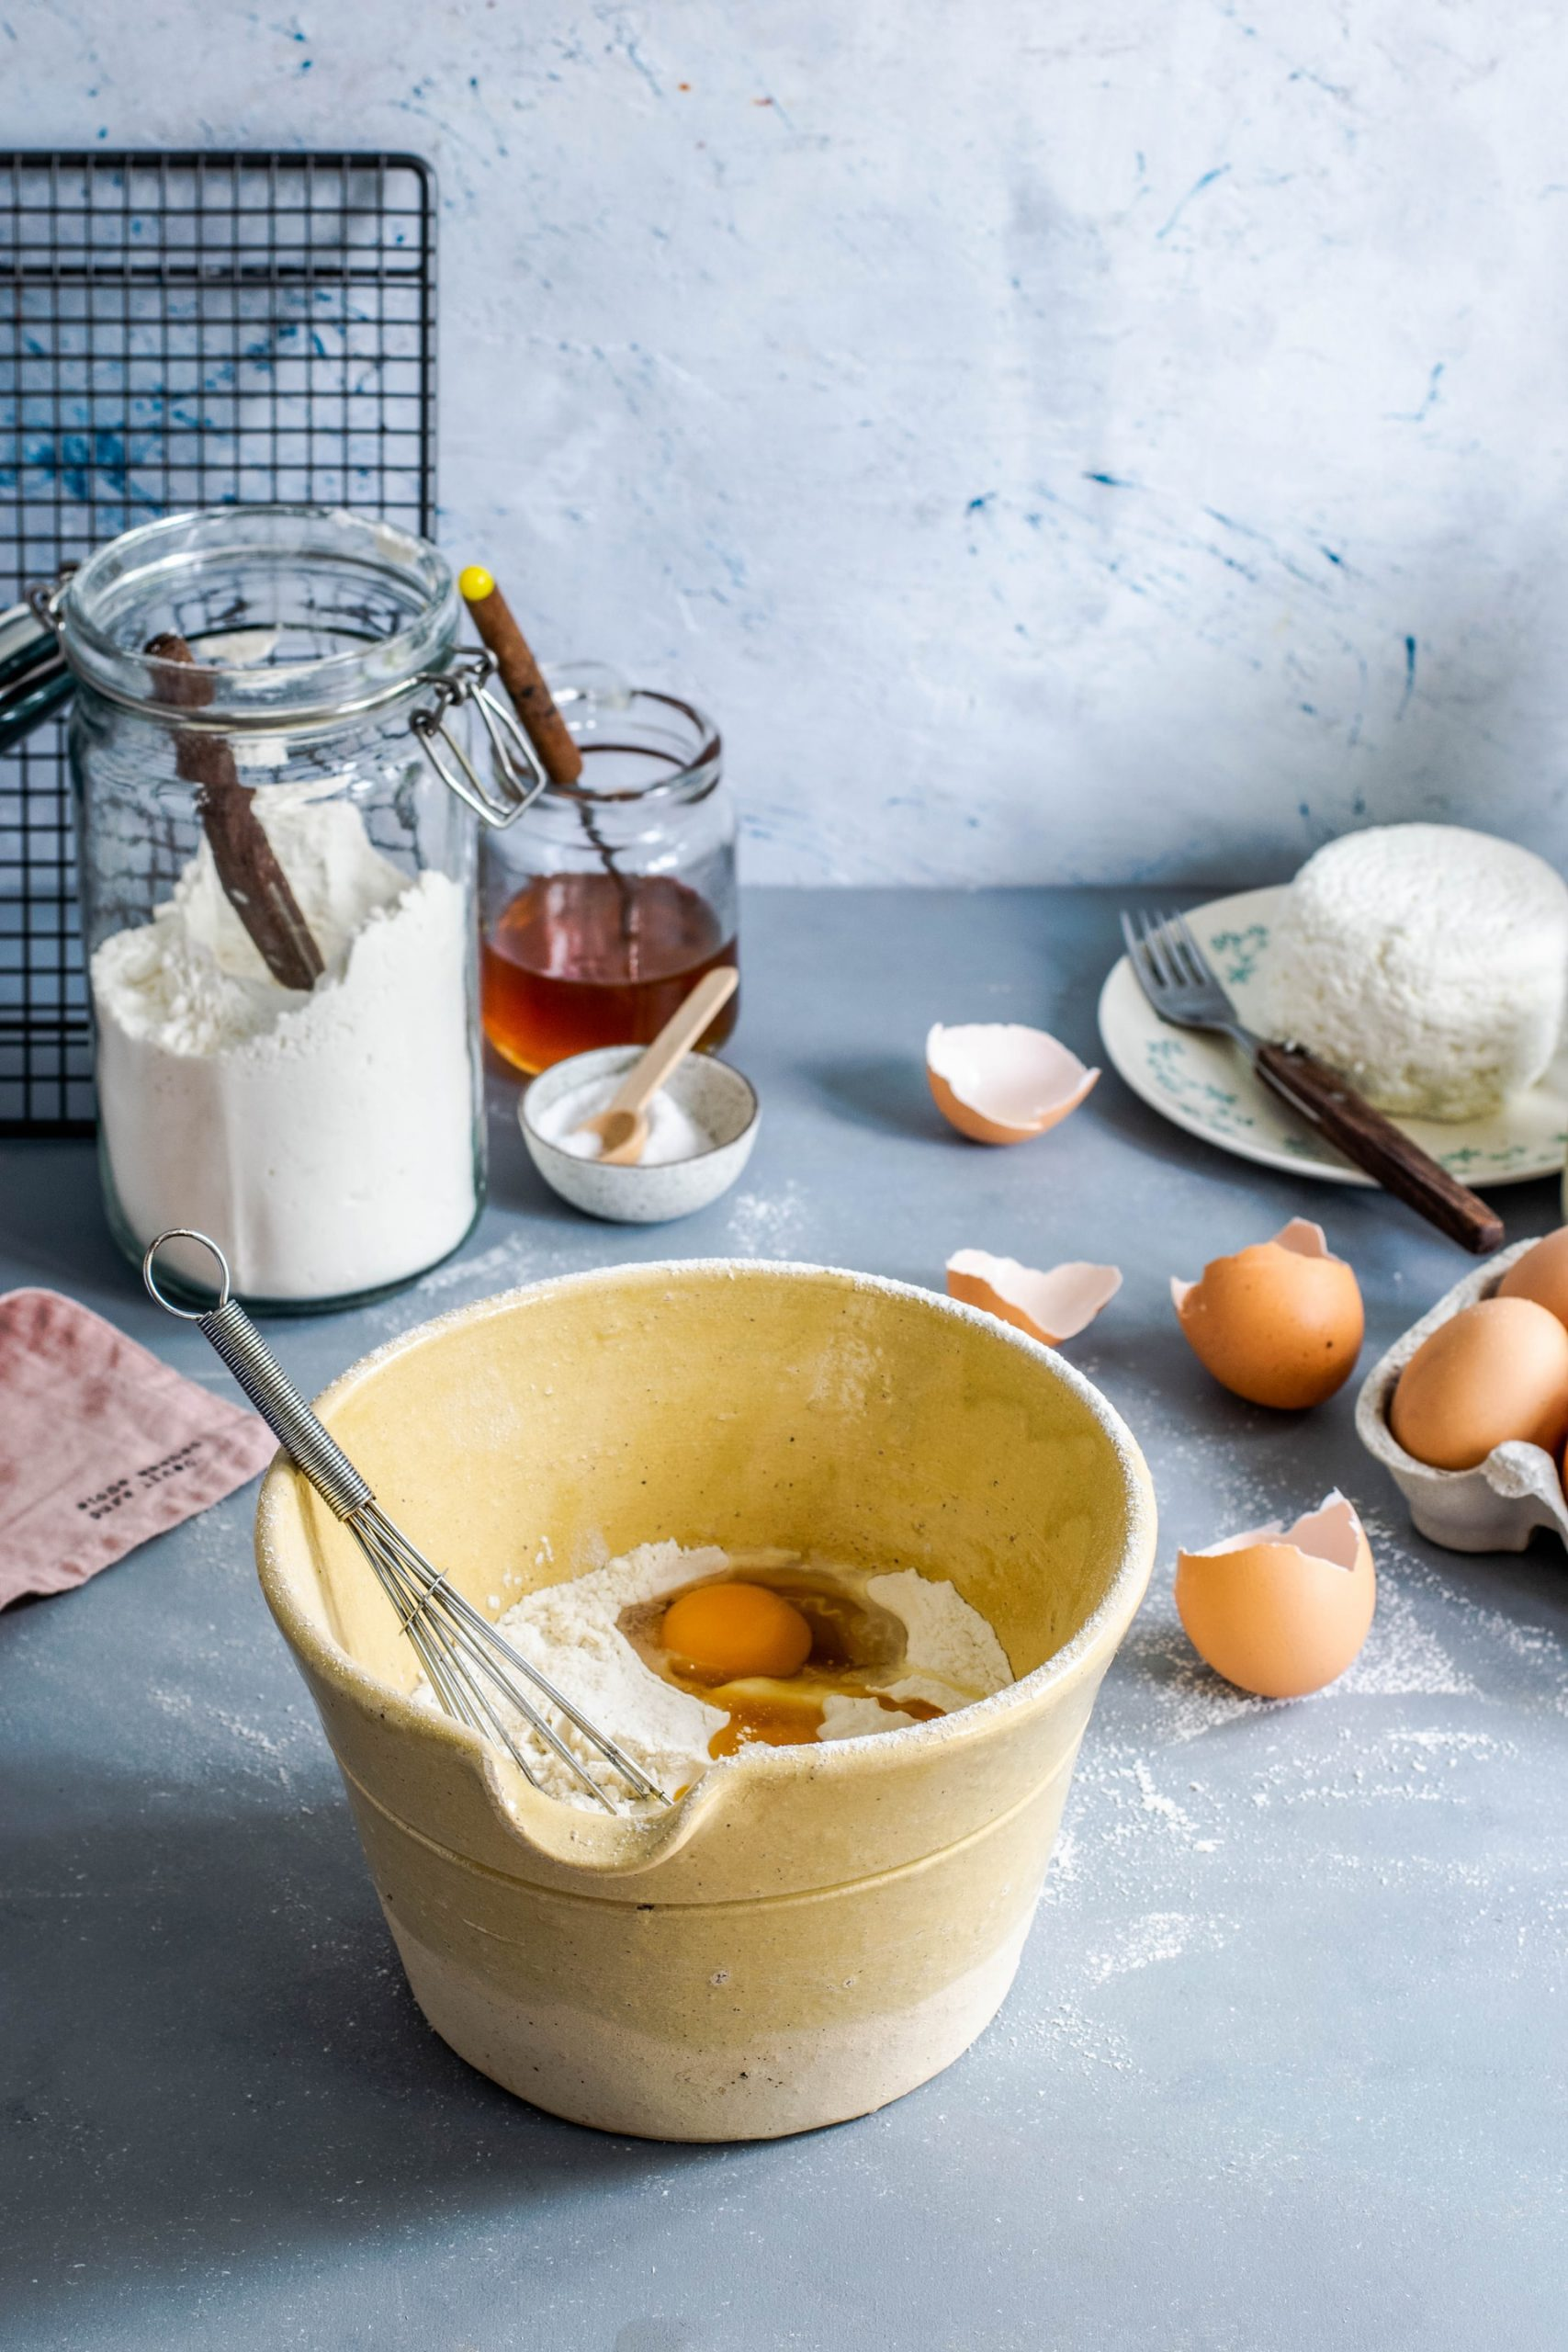 5 Ways to Simplify Your Holiday Baking